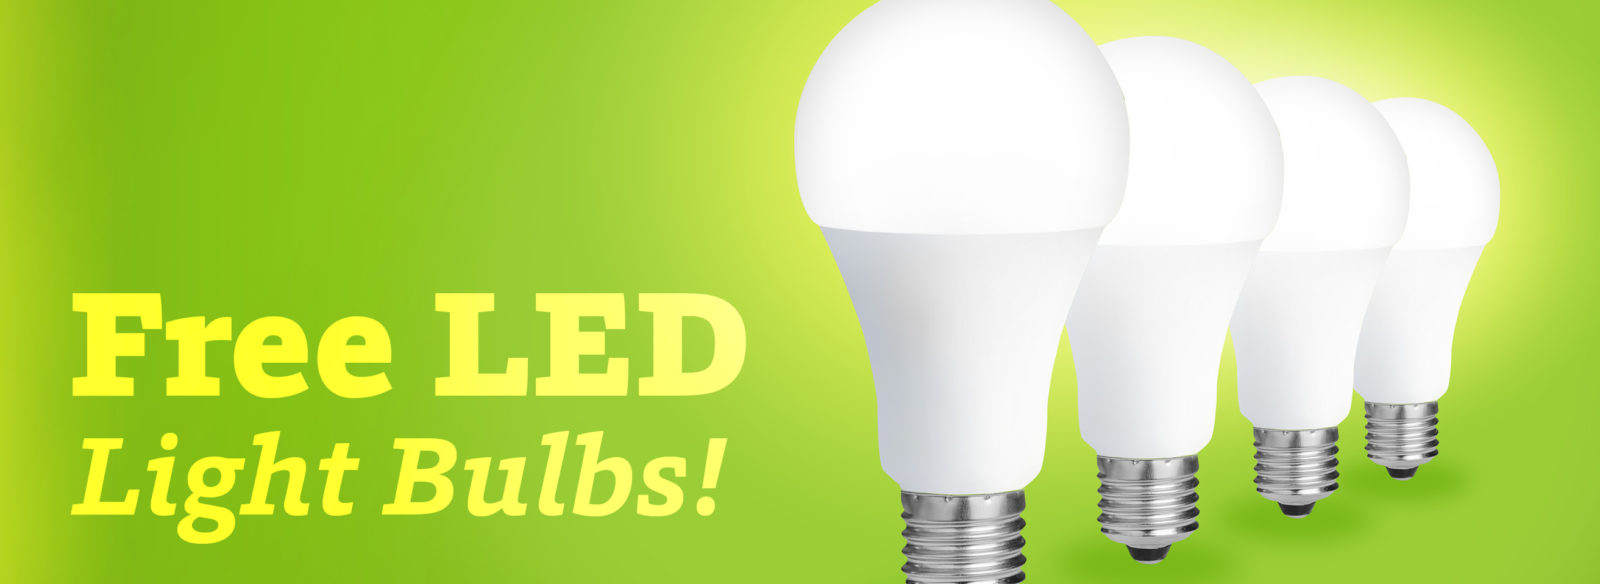 Free LED Light Bulbs